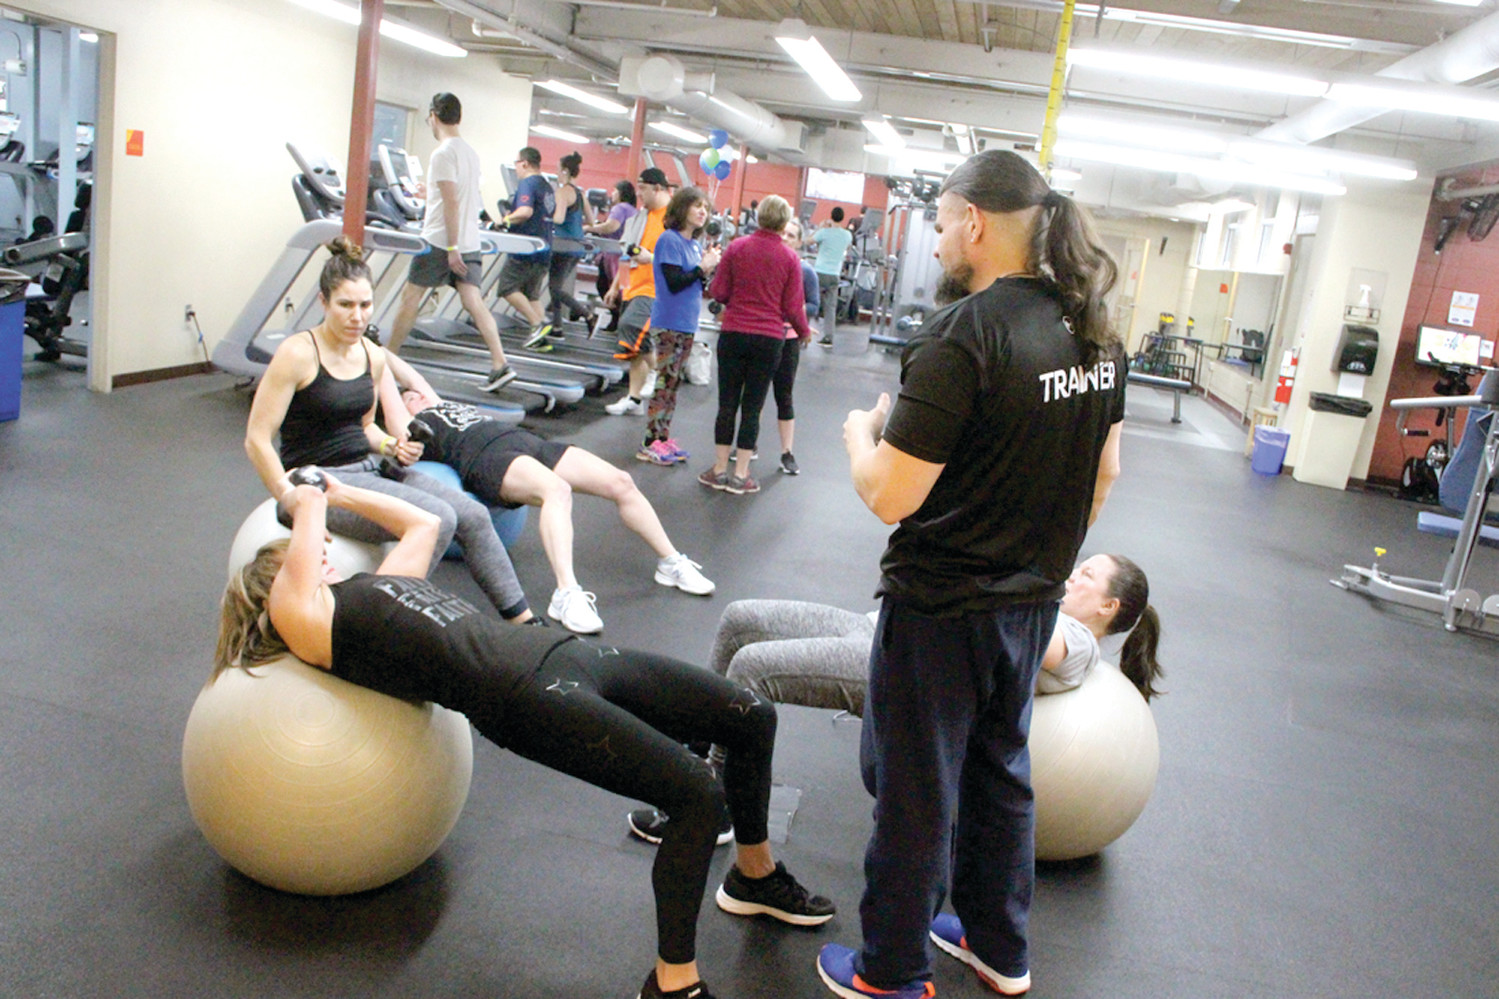 ON A ROLL: Trainer John Lorenson works with a group of four women, all Y members, going from station to station in the fitness center Saturday morning.